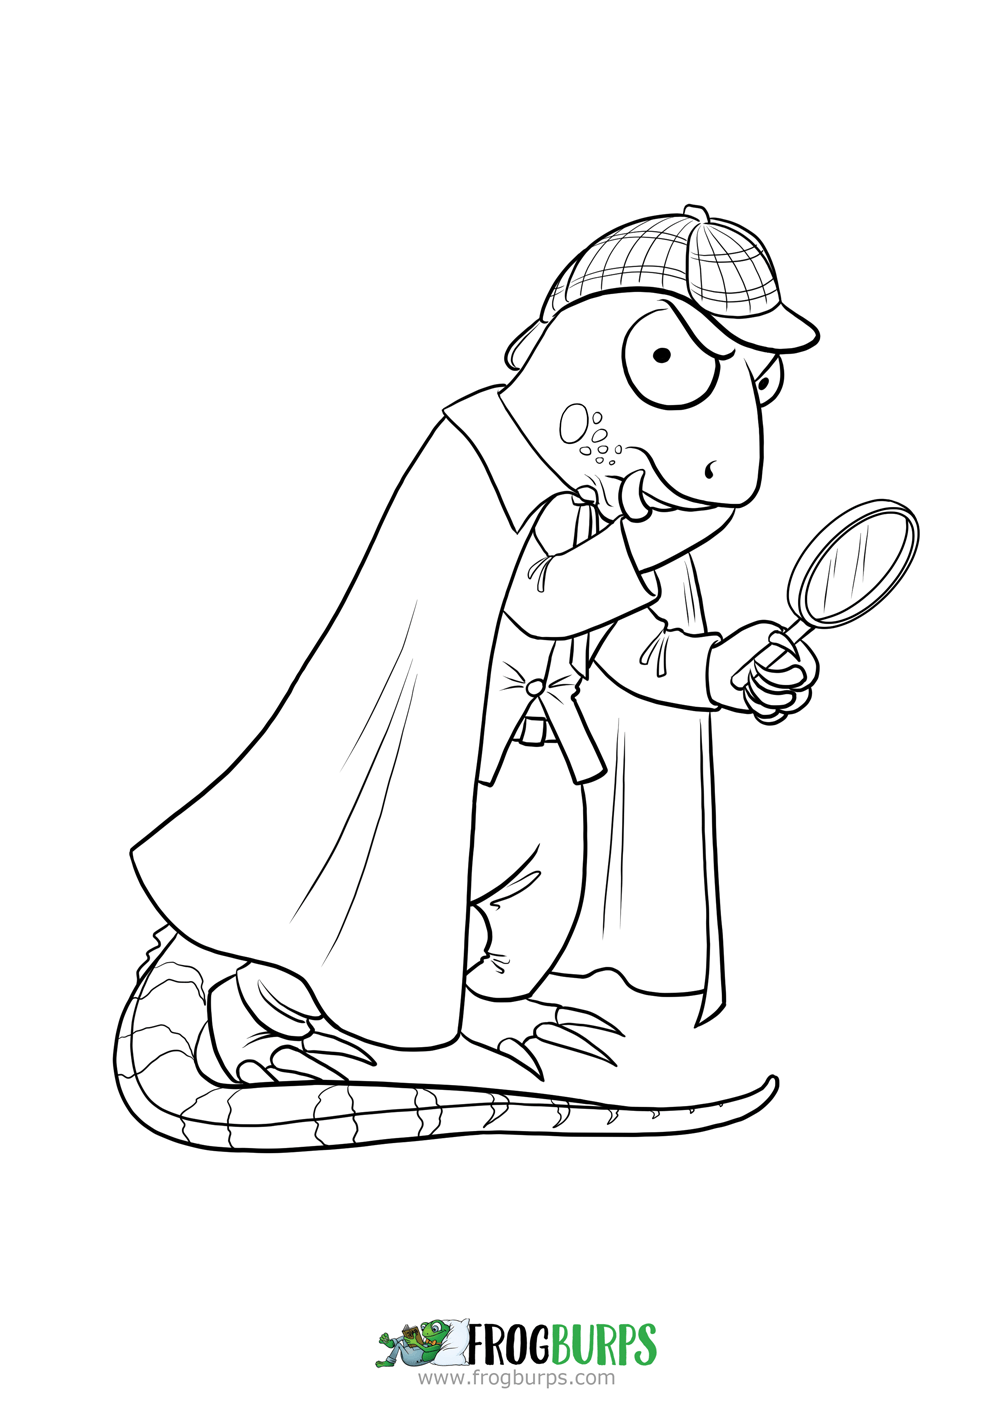 Igor the investigating Iguana | Coloring Page | Frogburps Coloring ...